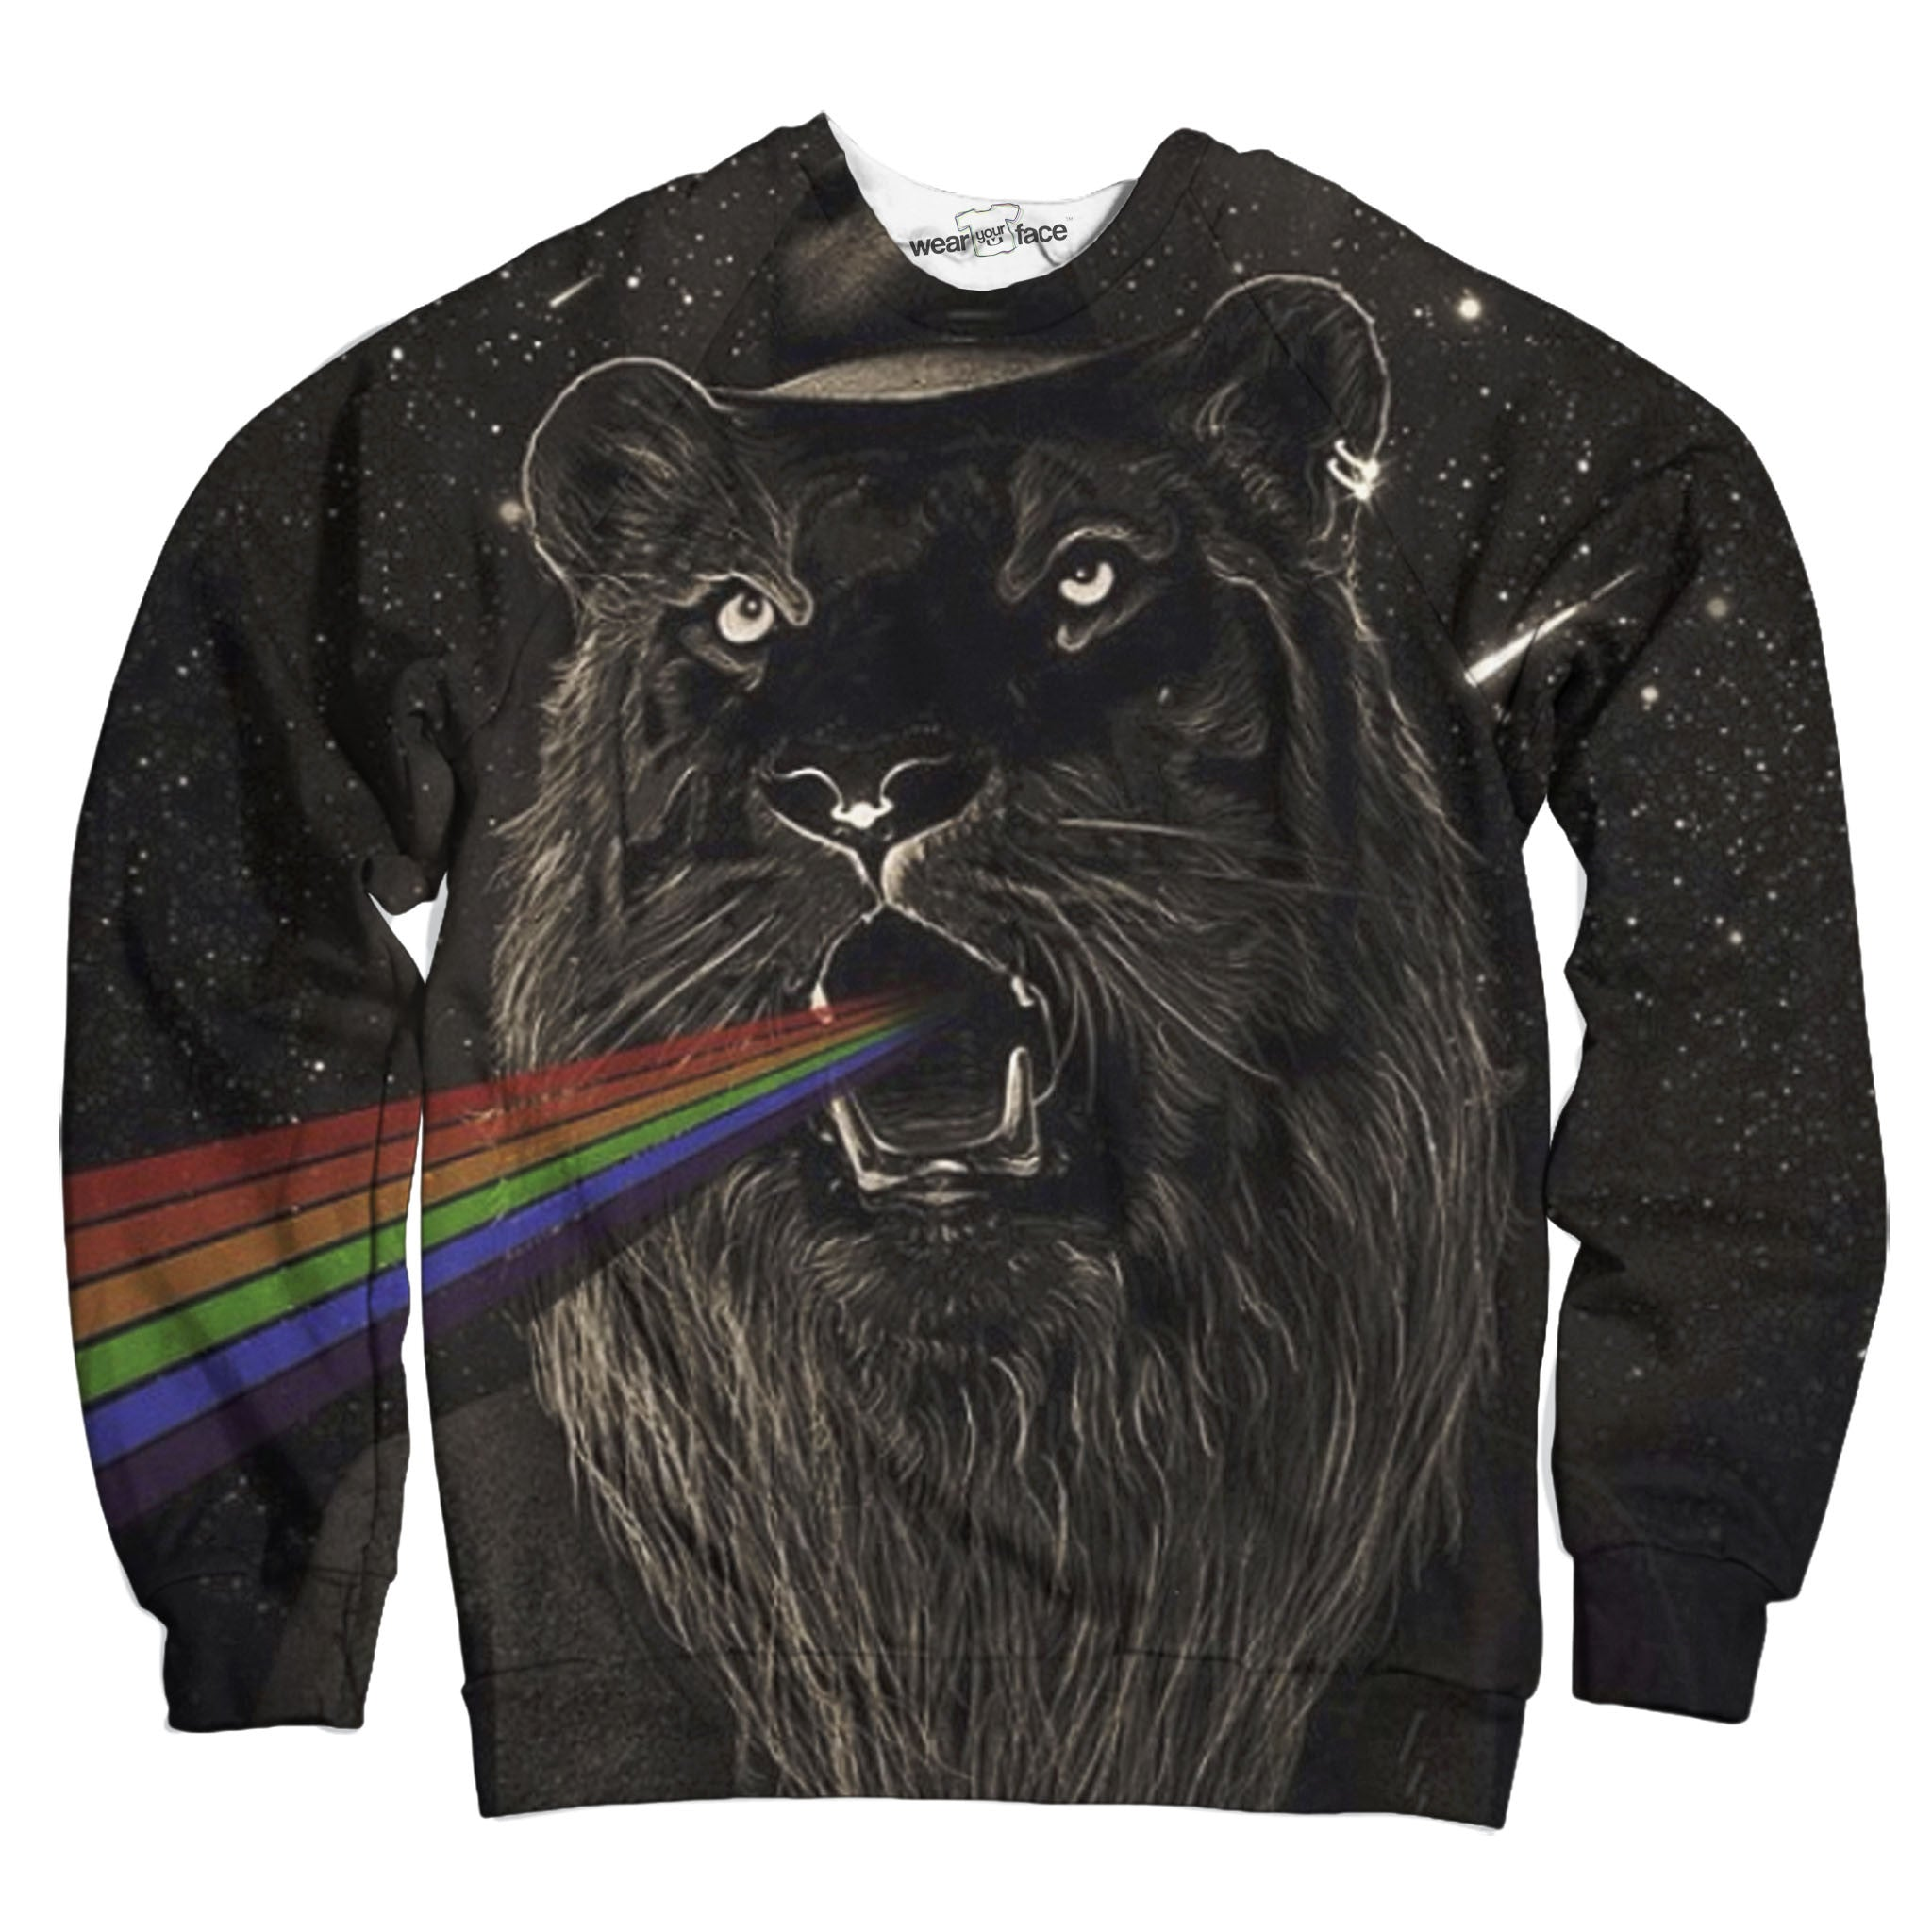 The Intergalactic Lion Sweatshirt